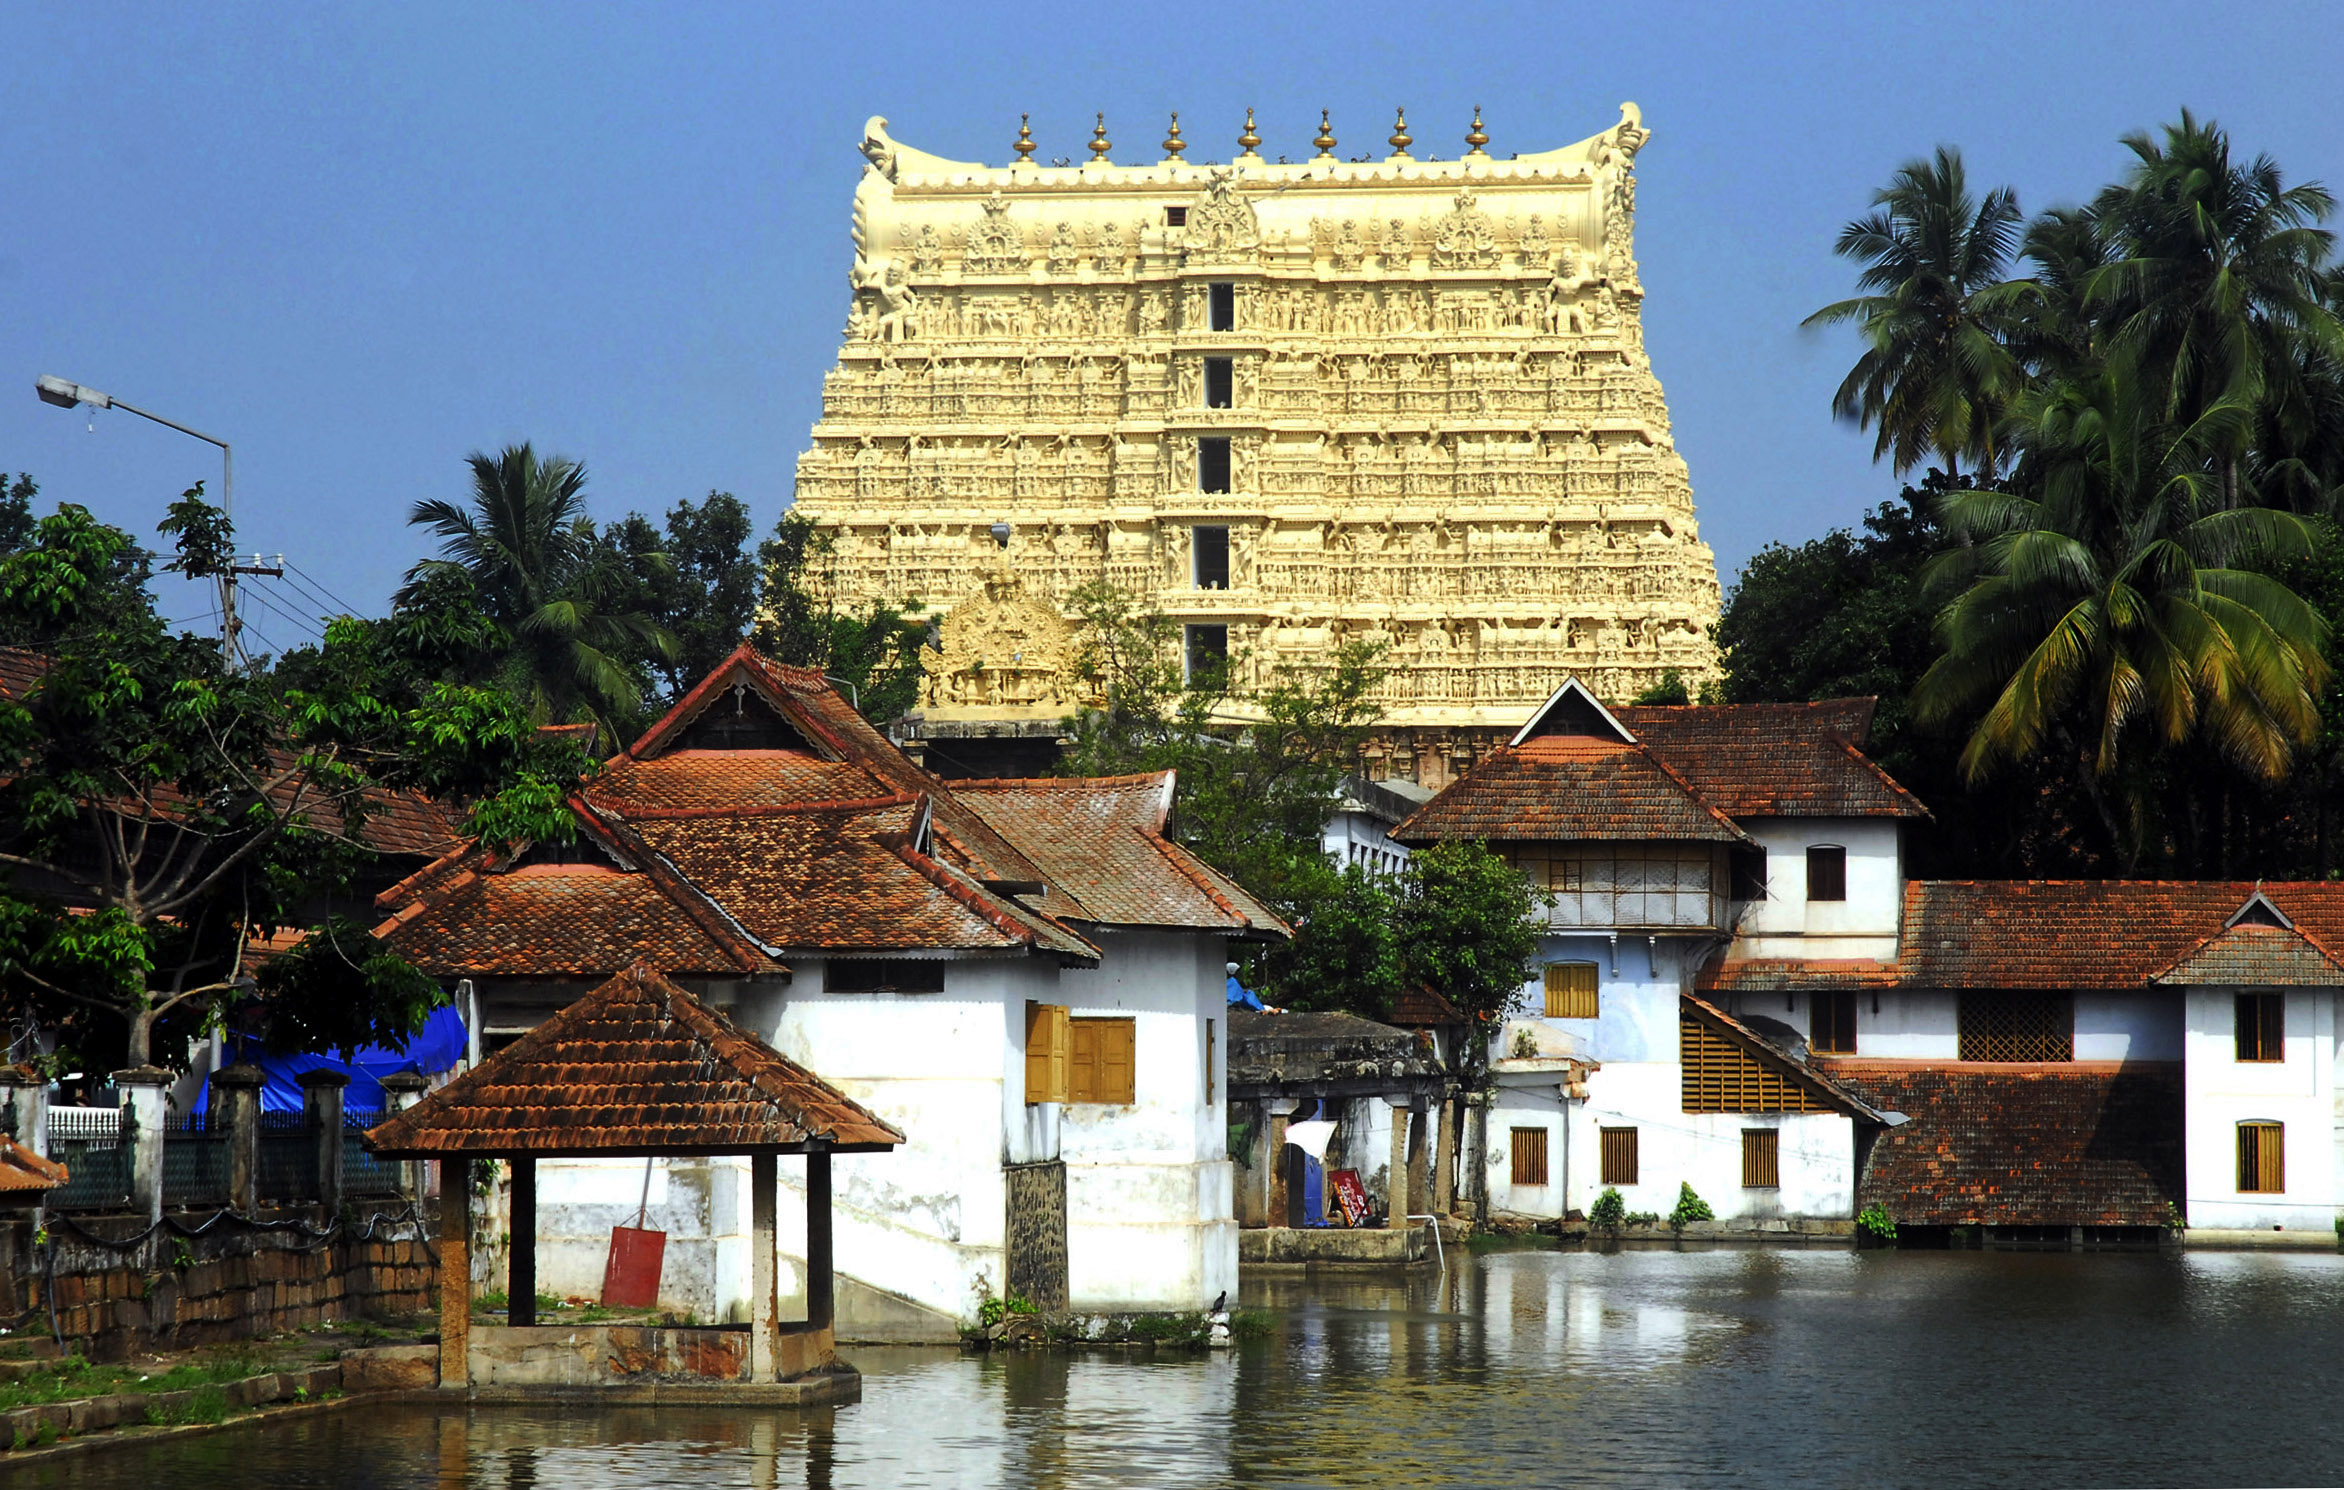 How To Reach Padmanabhaswamy Temple,Thiruvananthapuram Kerala